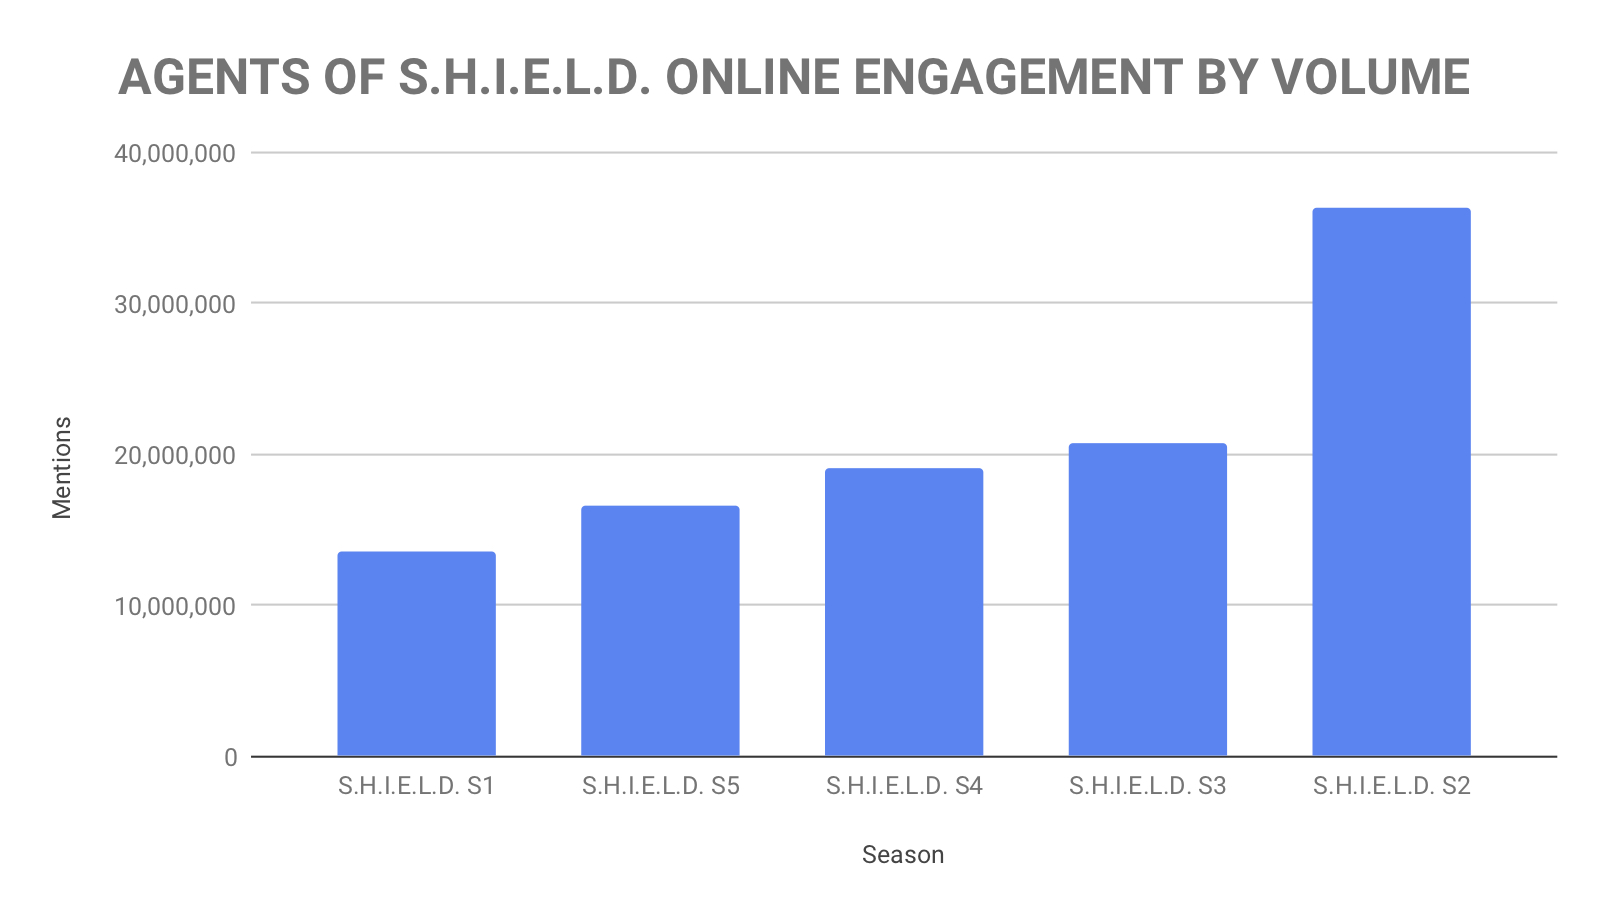 AGENTS OF S.H.I.E.L.D. ONLINE ENGAGEMENT BY VOLUME .jpg